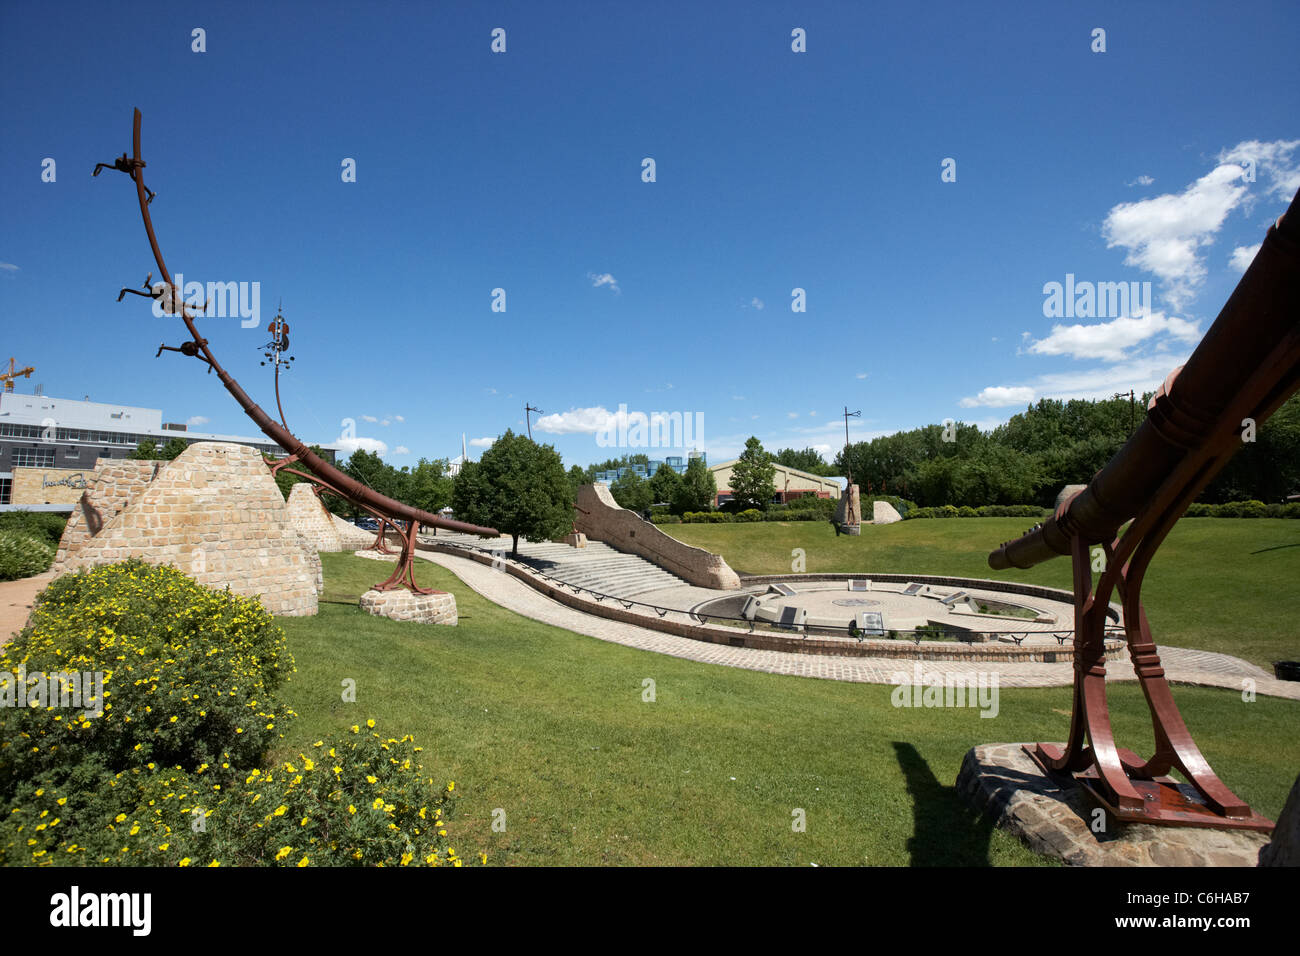 the oodena in the forks Winnipeg Manitoba Canada - Stock Image